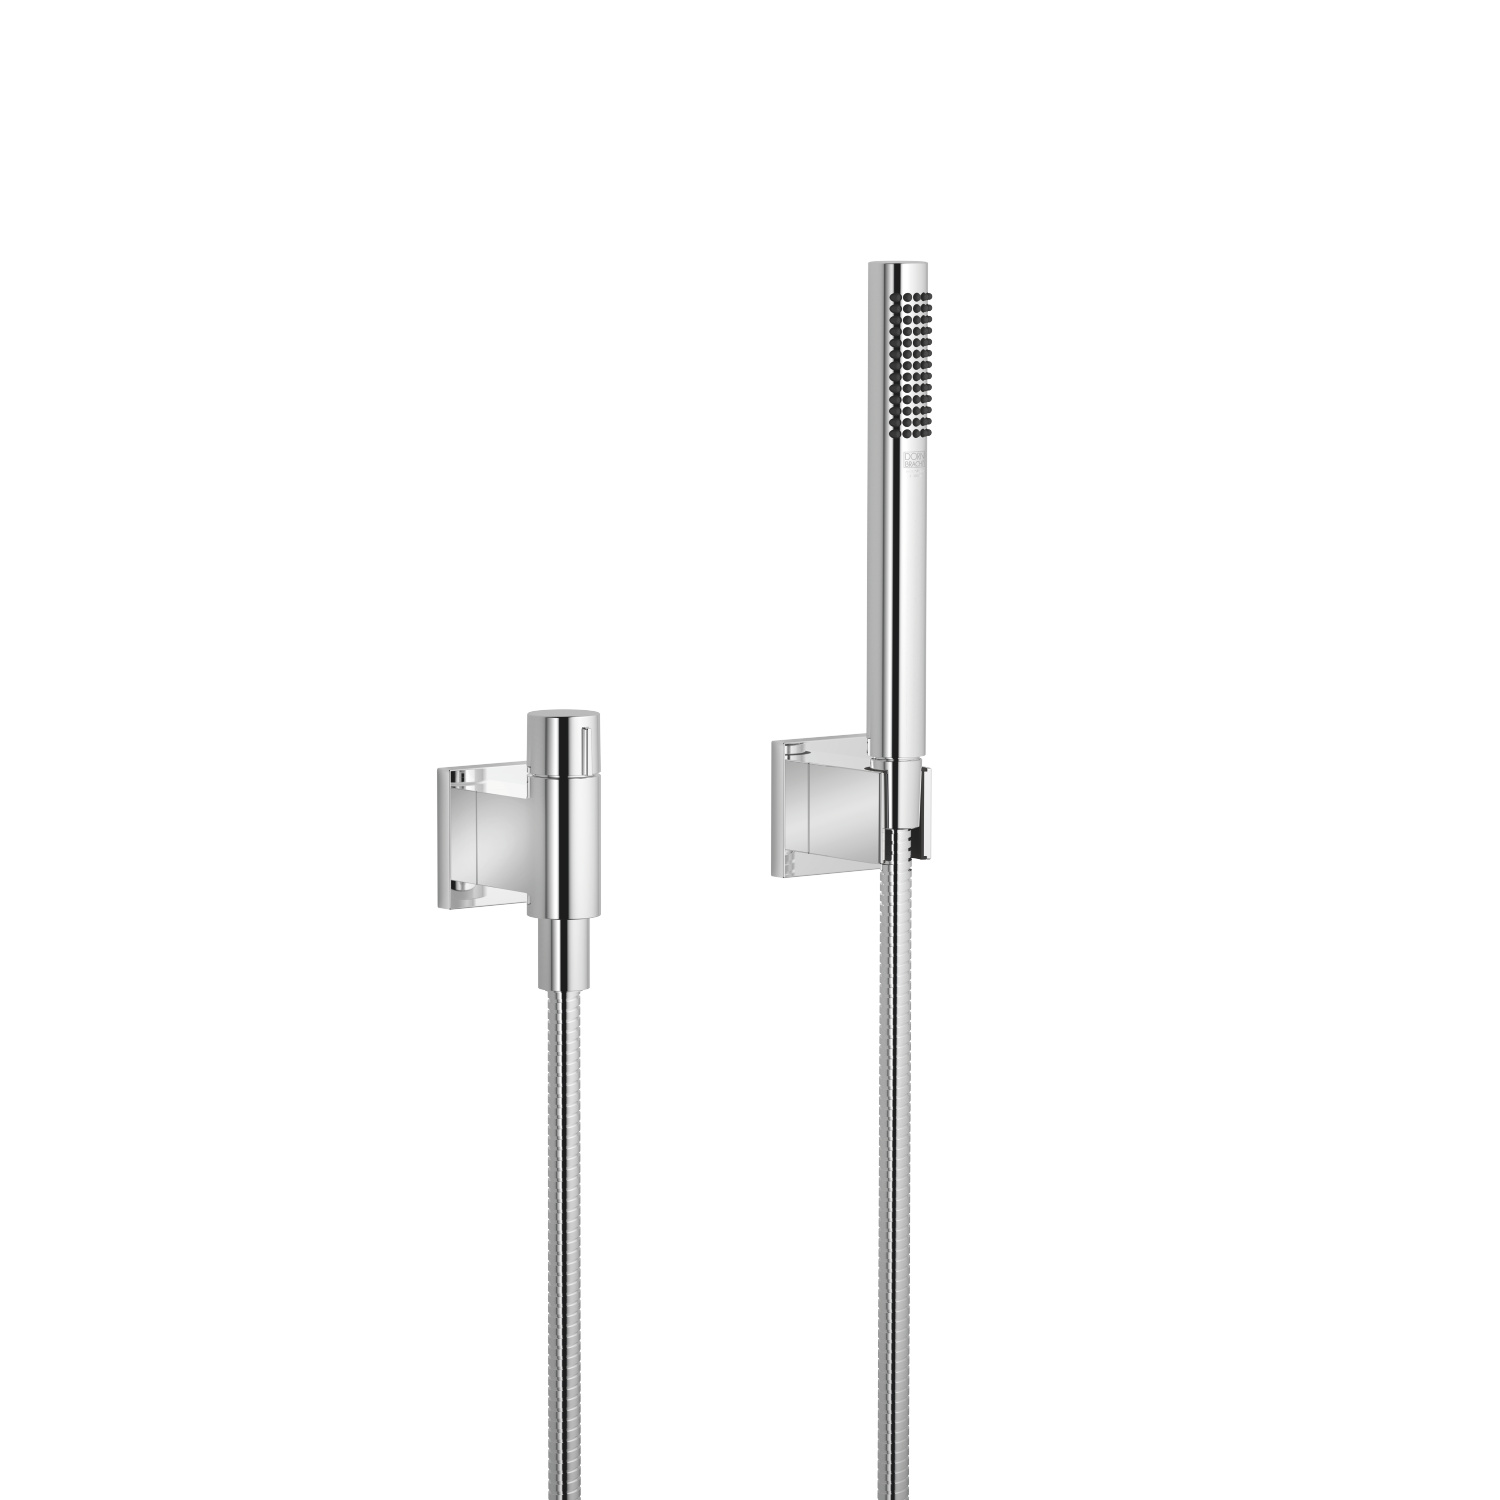 Hand shower set with individual flanges with volume control - polished chrome